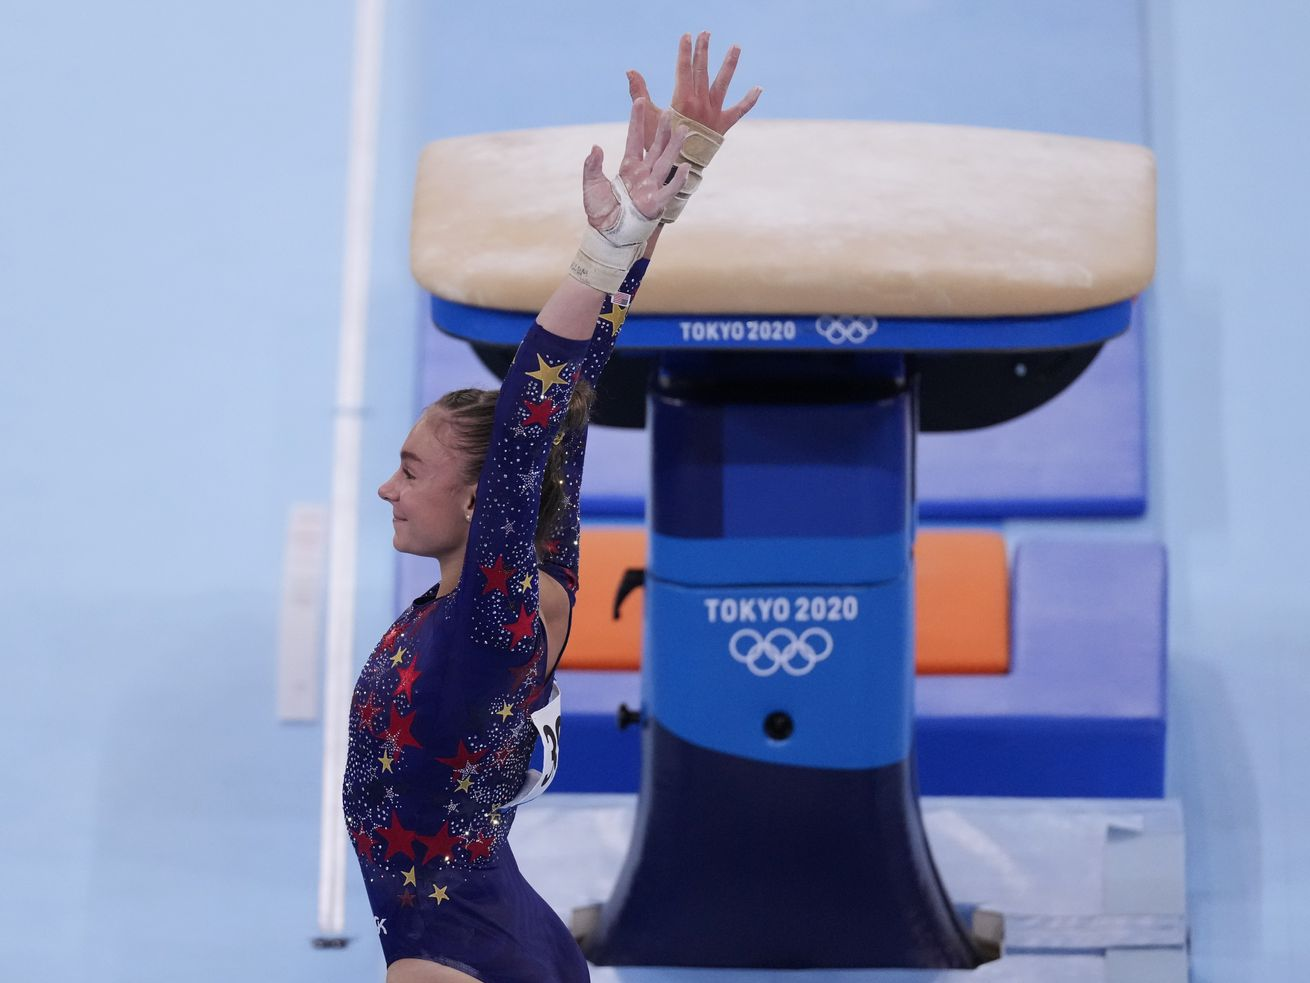 Grace McCallum was responsible for one of the more touching moments of the Olympics so far